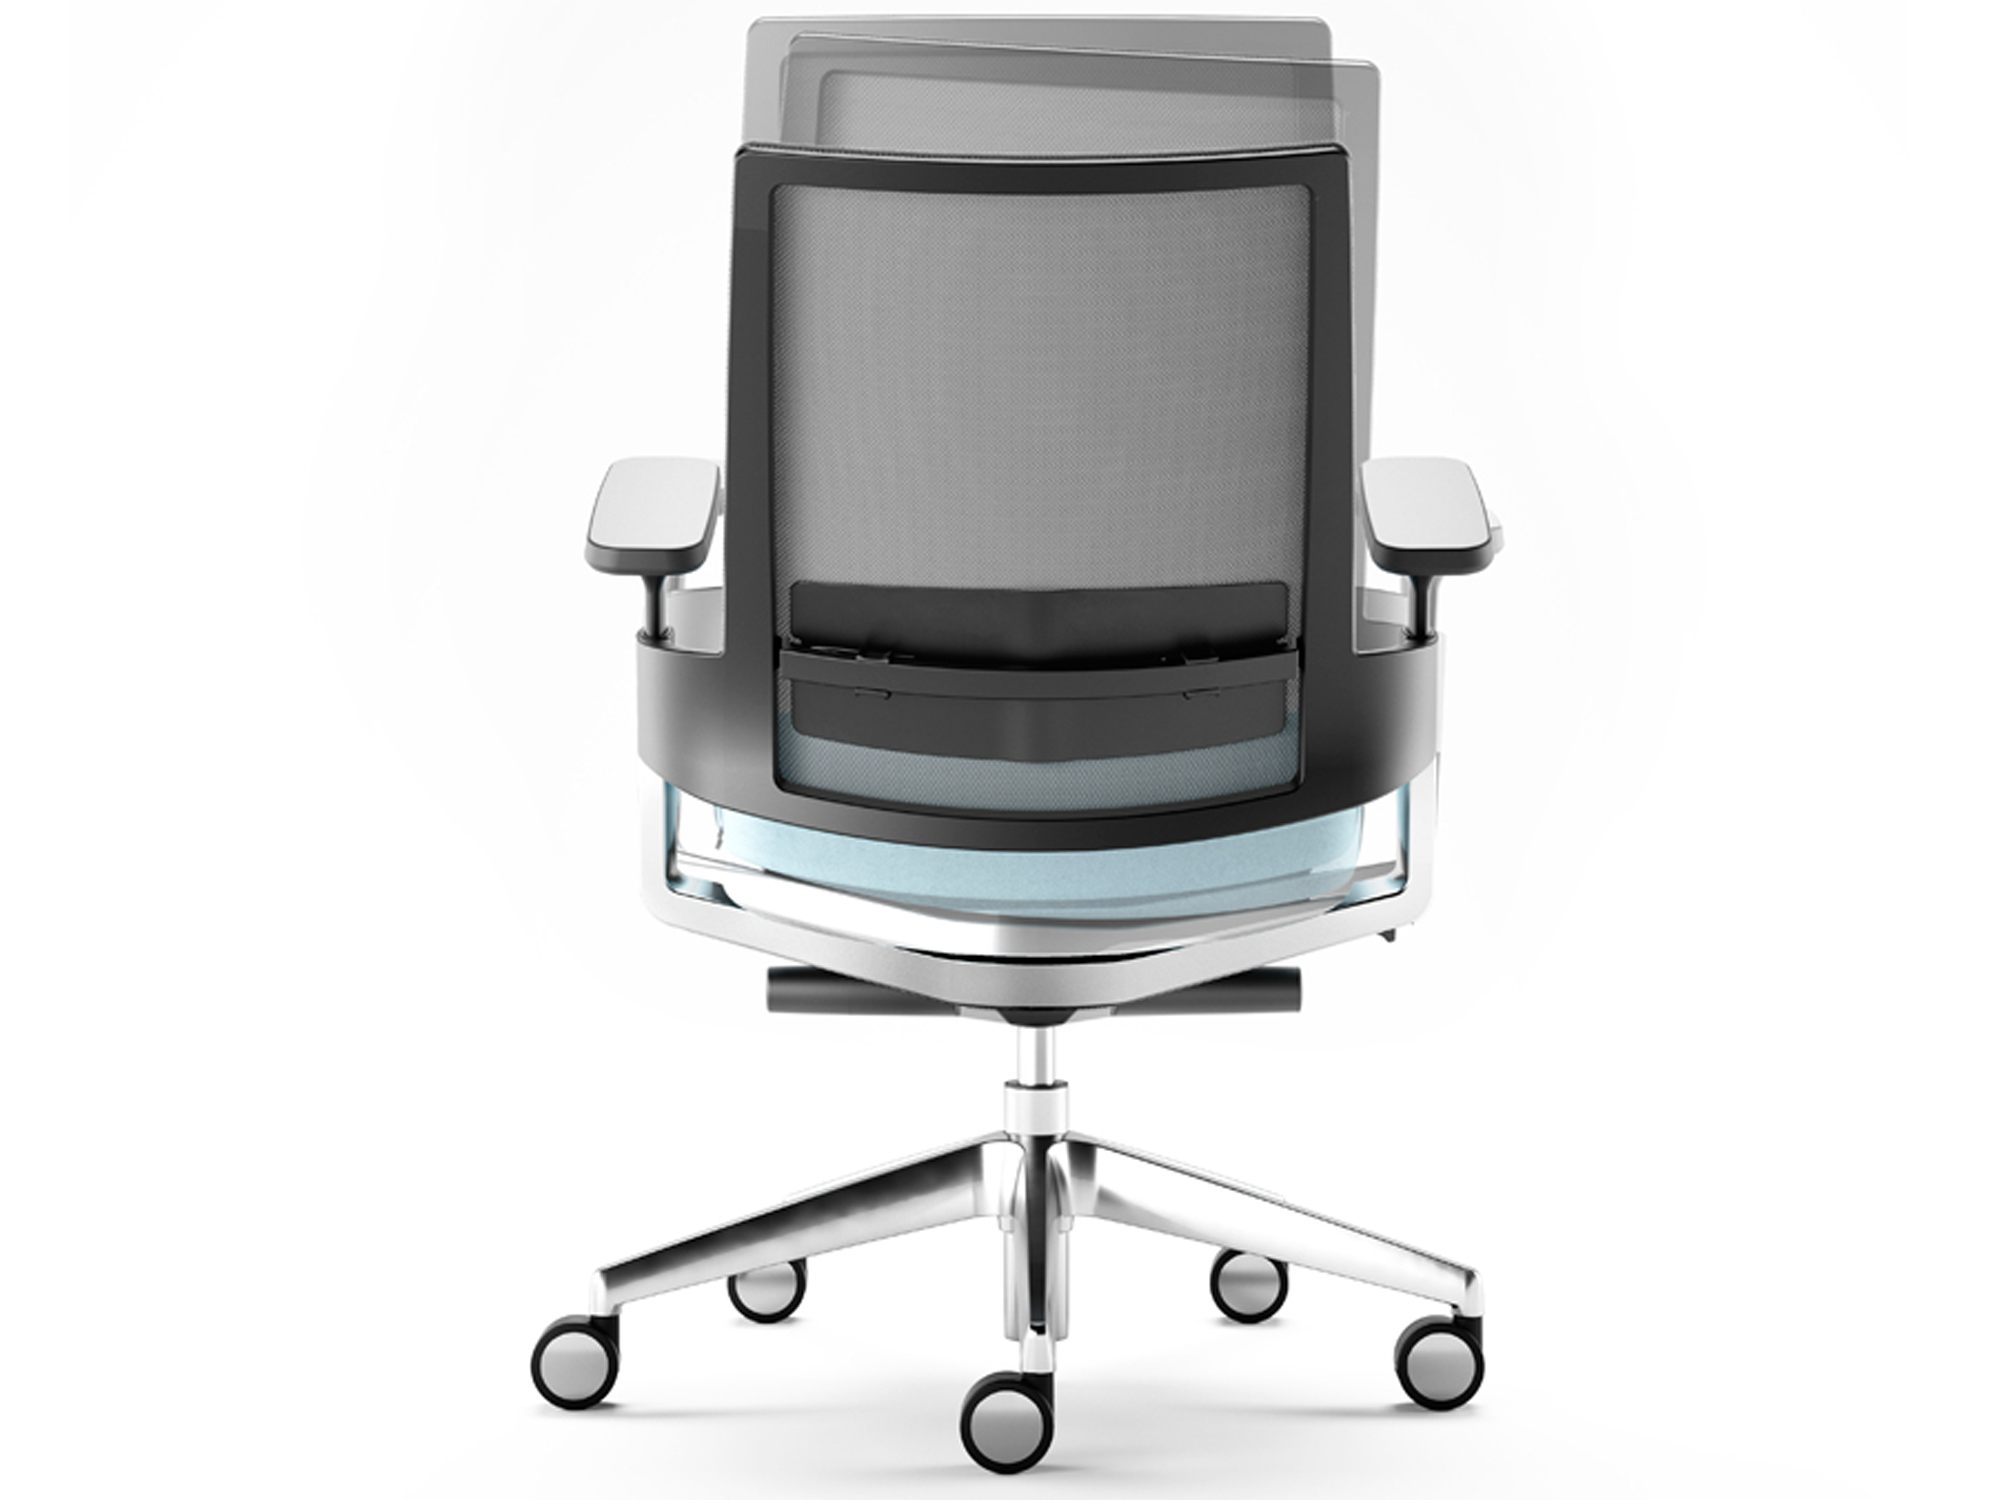 Ergonomic_chair_15.jpg